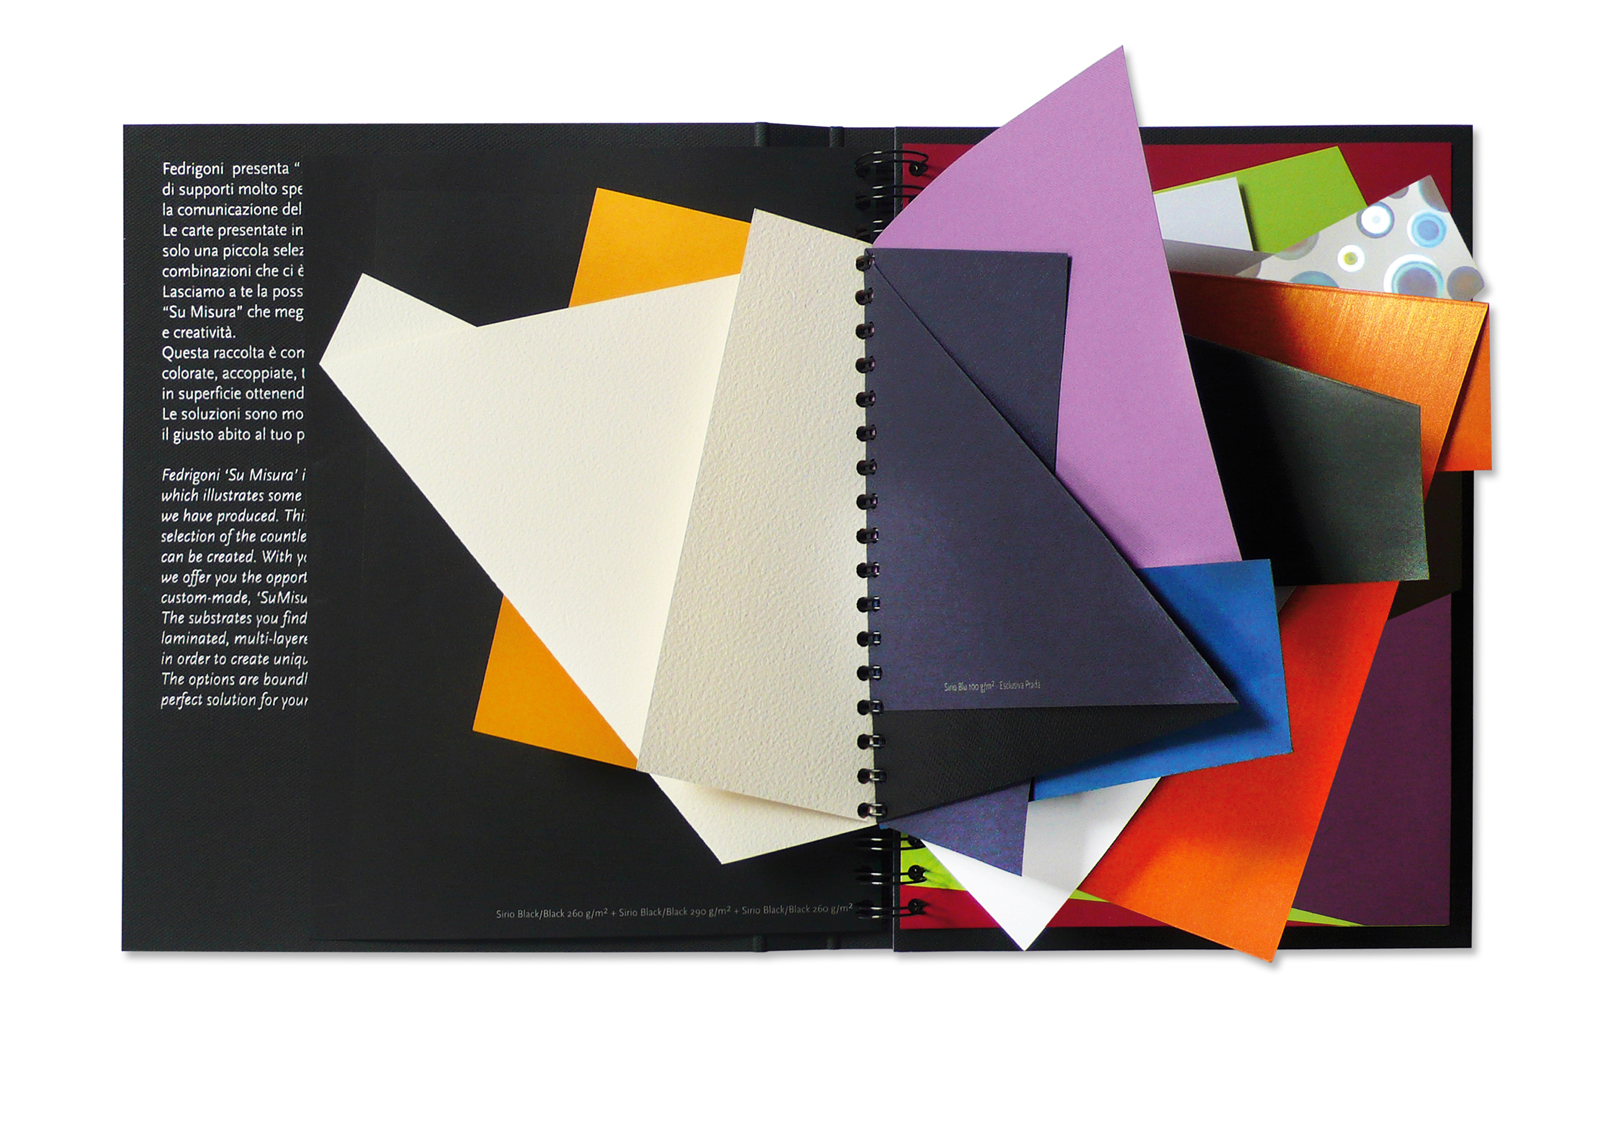 Limited edition Fedrigoni special papers sample book